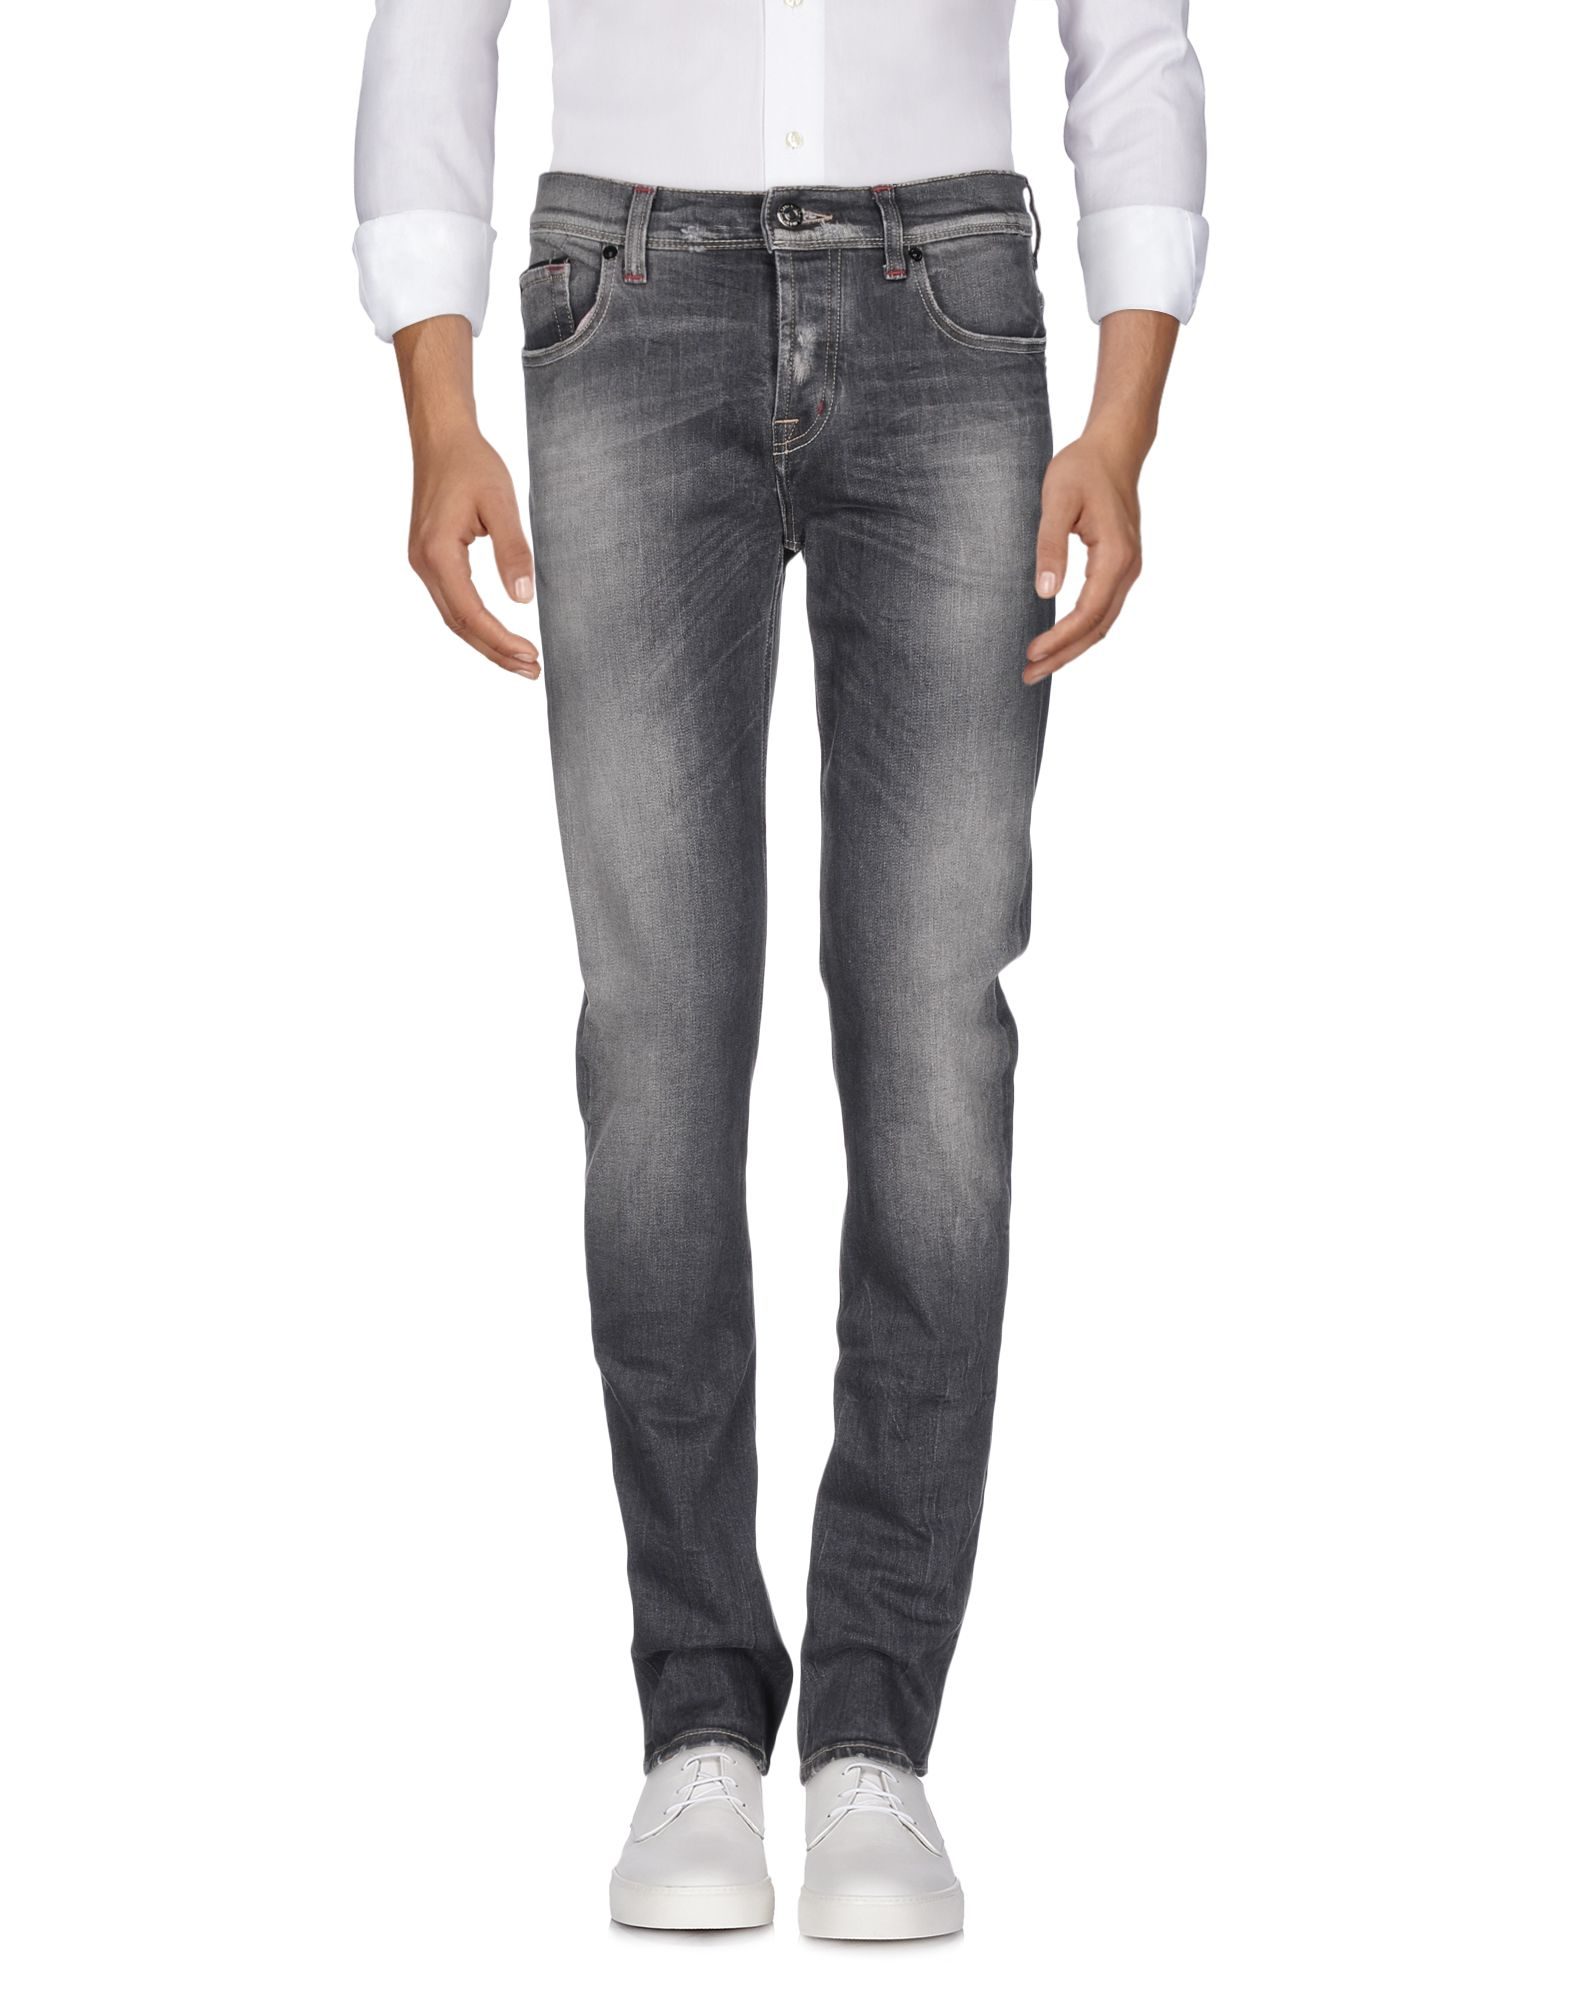 Pantaloni Jeans 7 For All Mankind Donna - Acquista online su